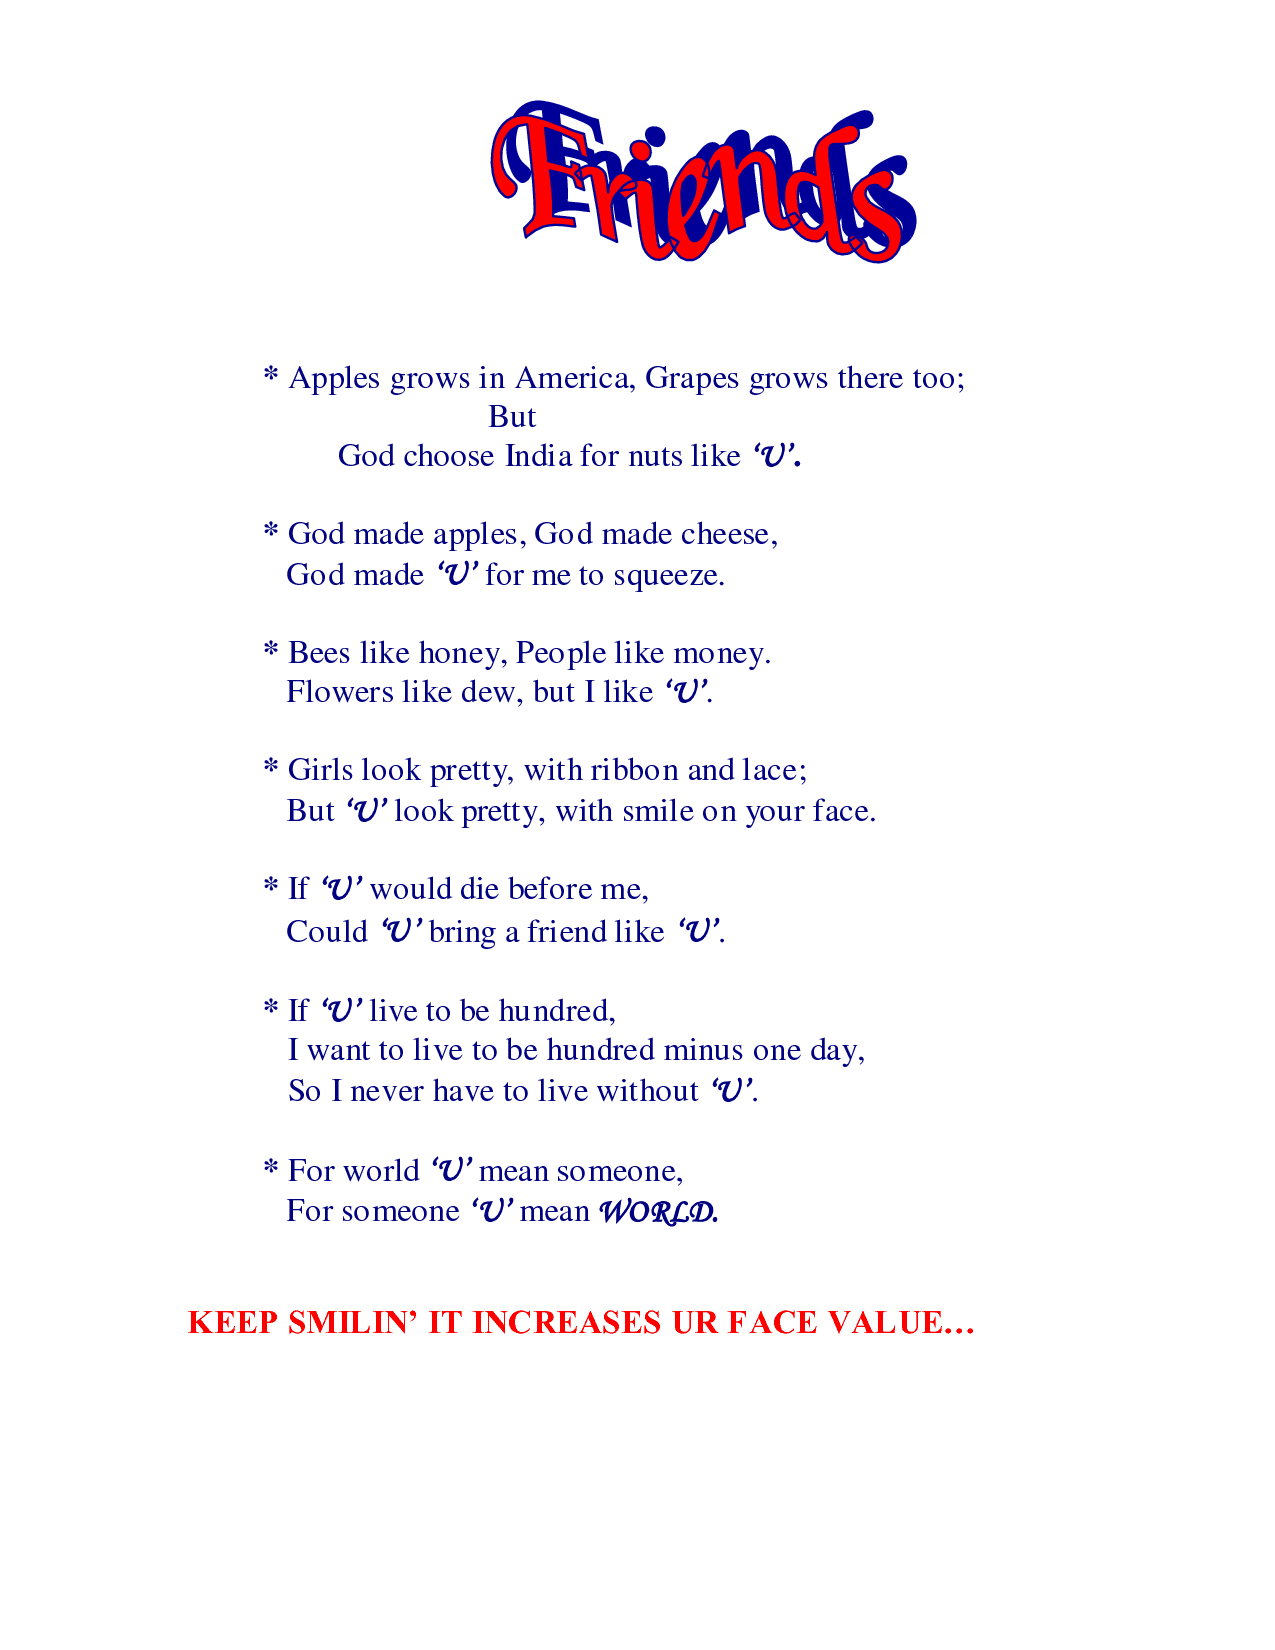 Friendship Quotes And Poems Funny : Funny friend quotes that rhyme quotesgram